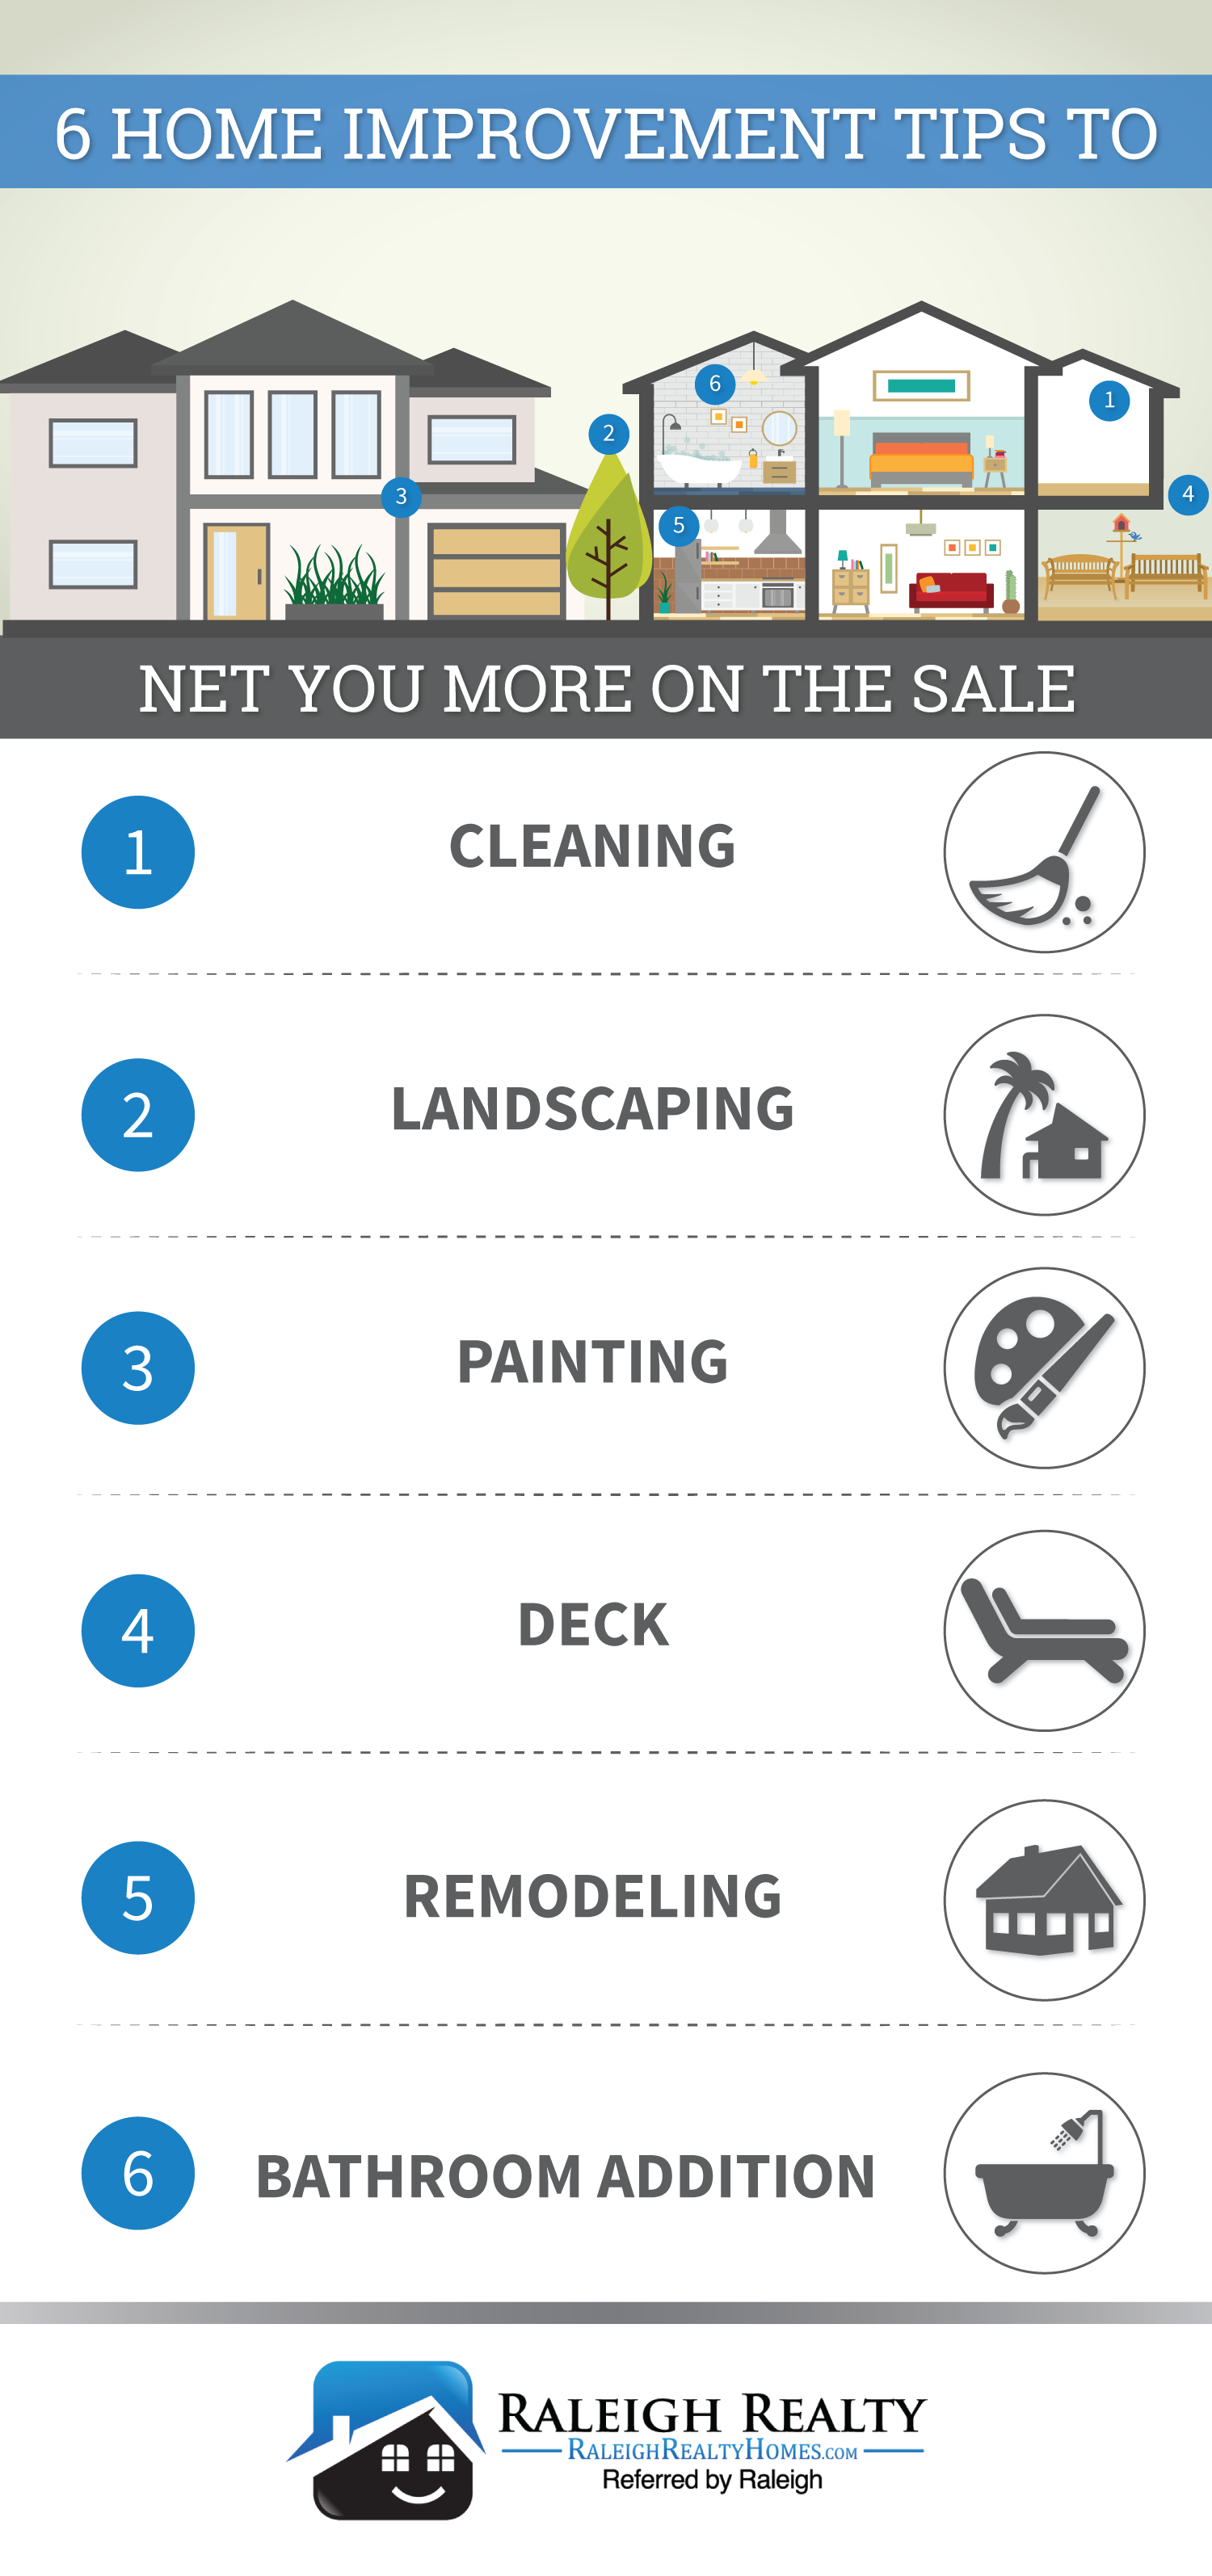 Home Improvements to Sell for More Money Infographic